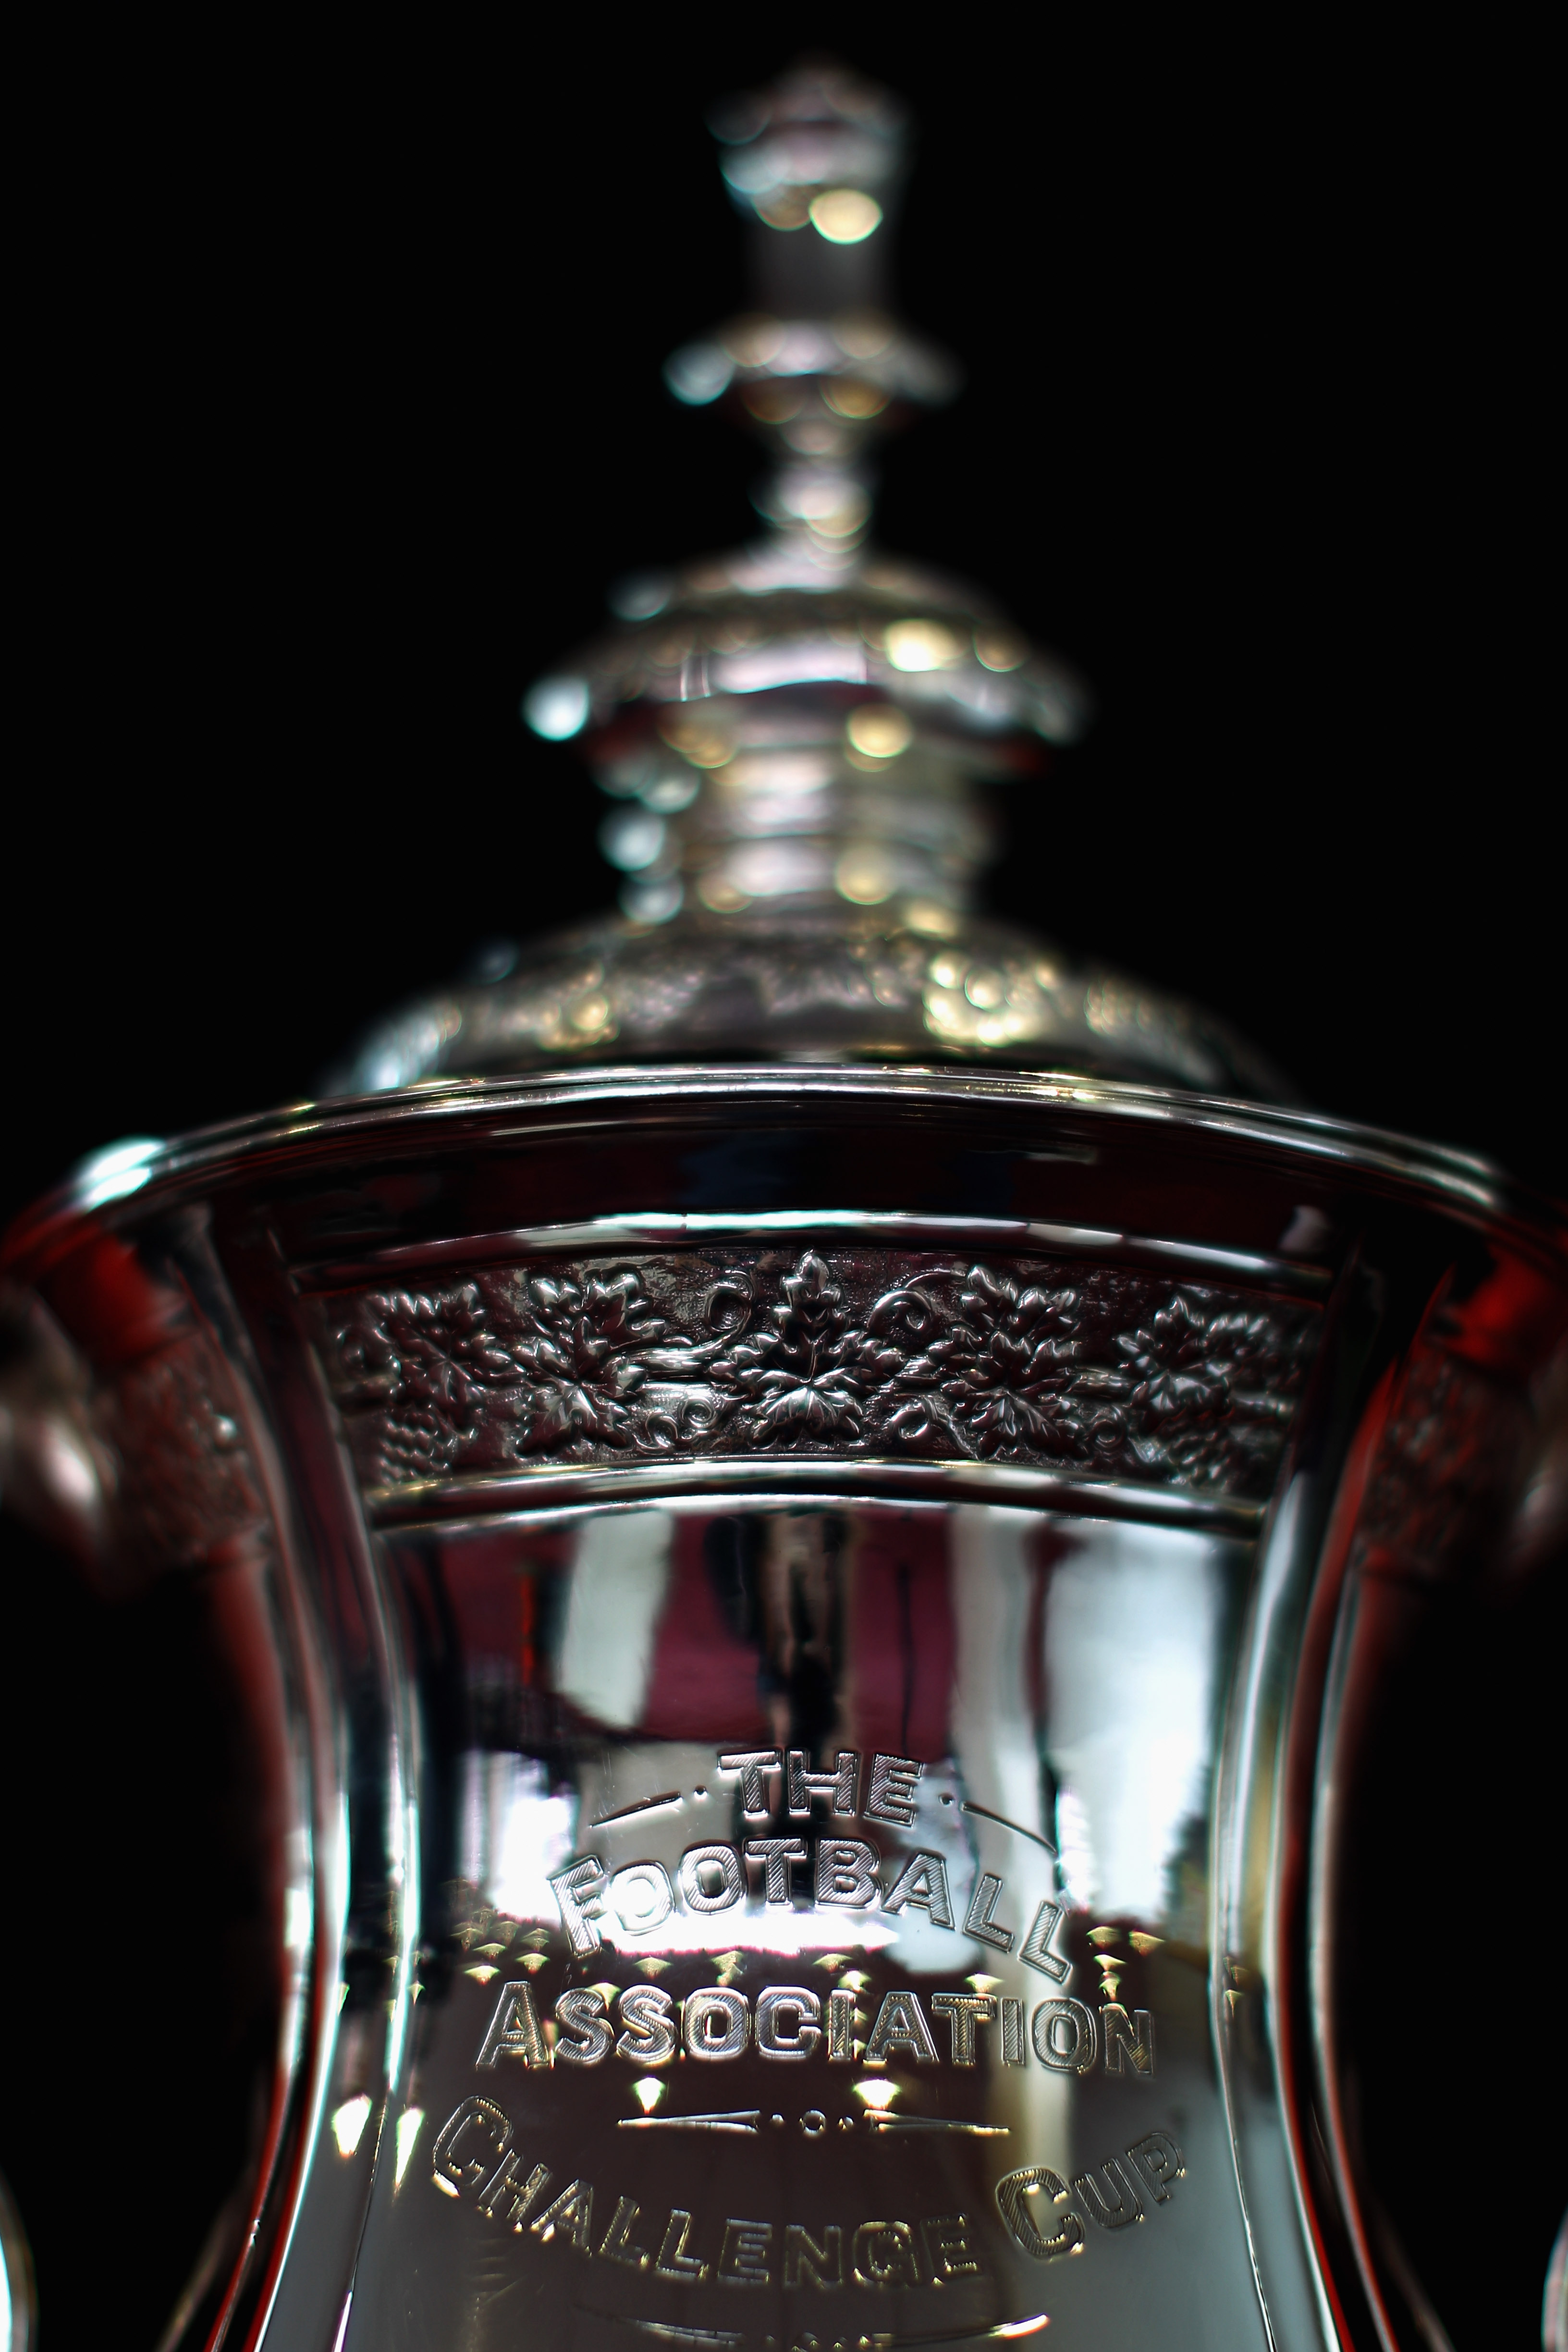 LONDON, ENGLAND - FEBRUARY 16:  A detailed view of the FA Cup sponsored by Eon at the Leyton Orient FA Cup Media Day at Matchroom Stadium on February 16, 2011 in London, England.  (Photo by Dean Mouhtaropoulos/Getty Images)